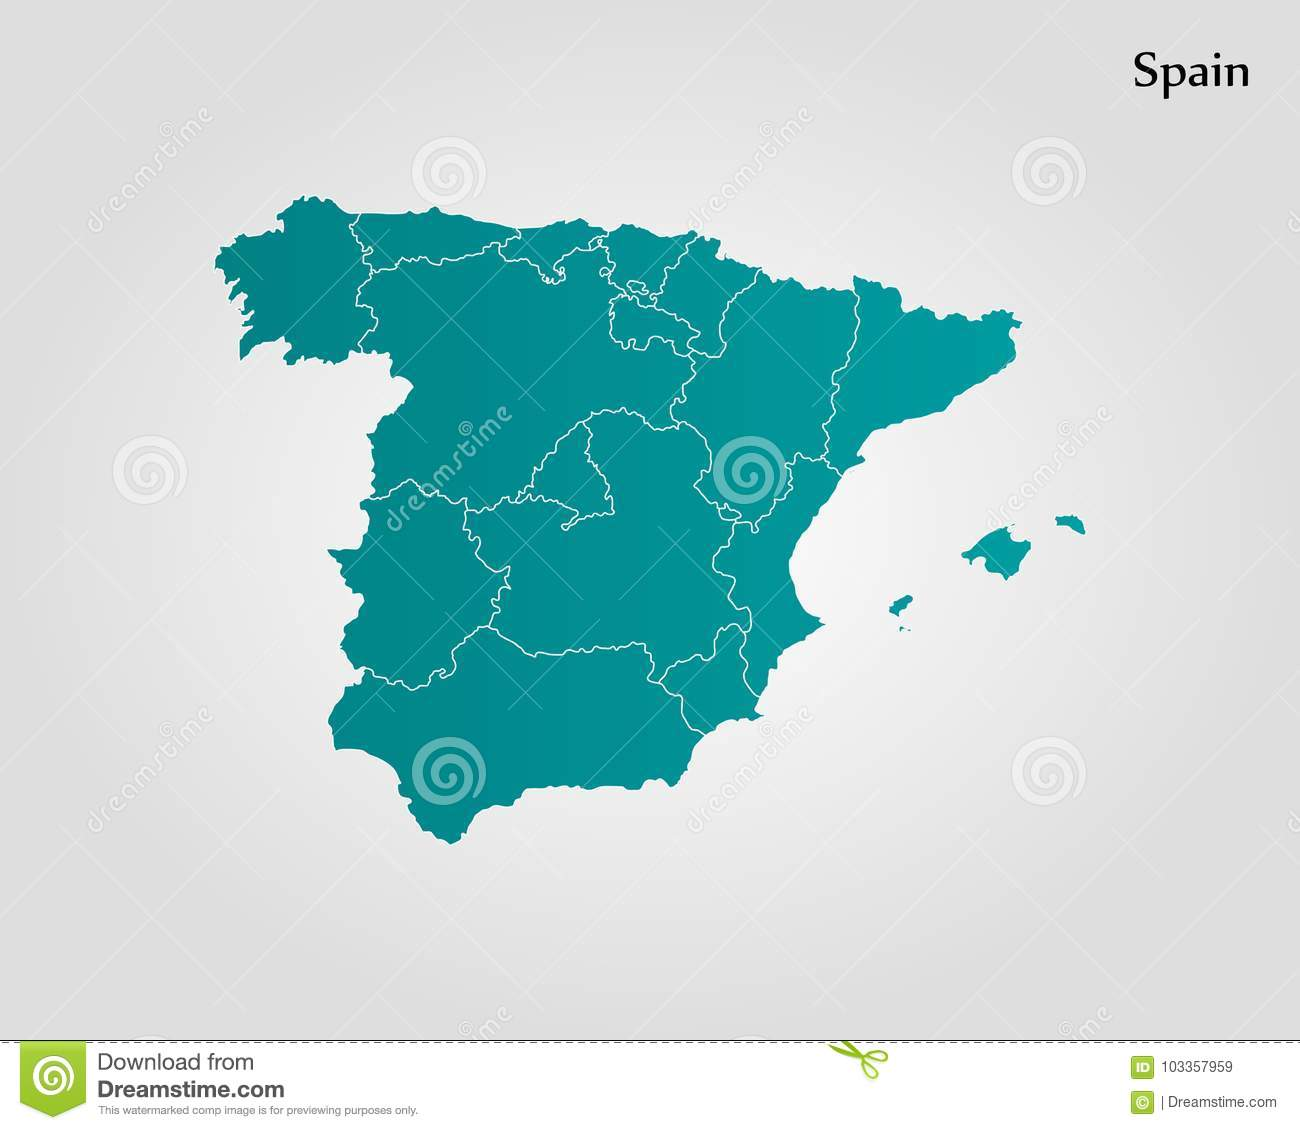 Map of Spain stock illustration. Illustration of plain - 103357959 Images Of World Map Plain on colored map of world, white map of world, labeled map of the world, tropical climate map of world, religion map of world, clear map of world, physical map of the world, river map of world, desert map of world, plain world map printable, mountain map of world, continent map of world, simple map of world, flat map of the world, plain world map with countries, rainfall map of world, united states map of world, political map of world, light map of world, plains of the world,